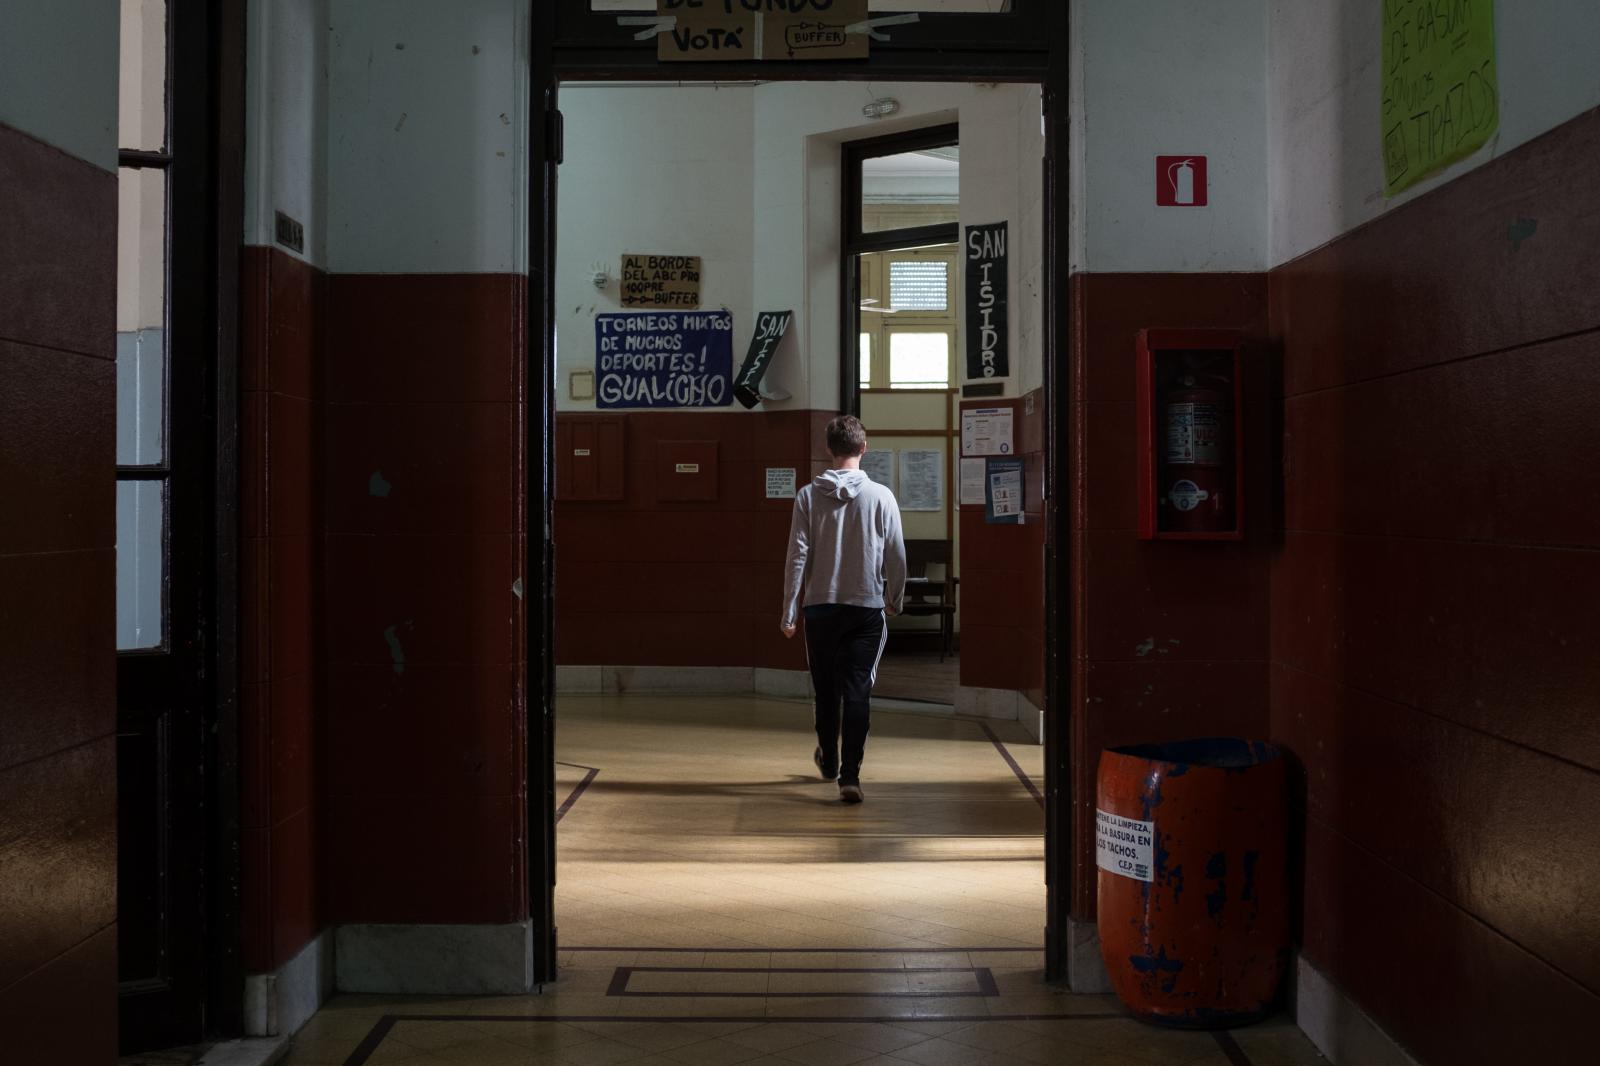 A student walks in Politecnico Superior General San Martin. Rosario, Argentina, November 2nd 2017. Erica Canepa for The Wall Street Journal